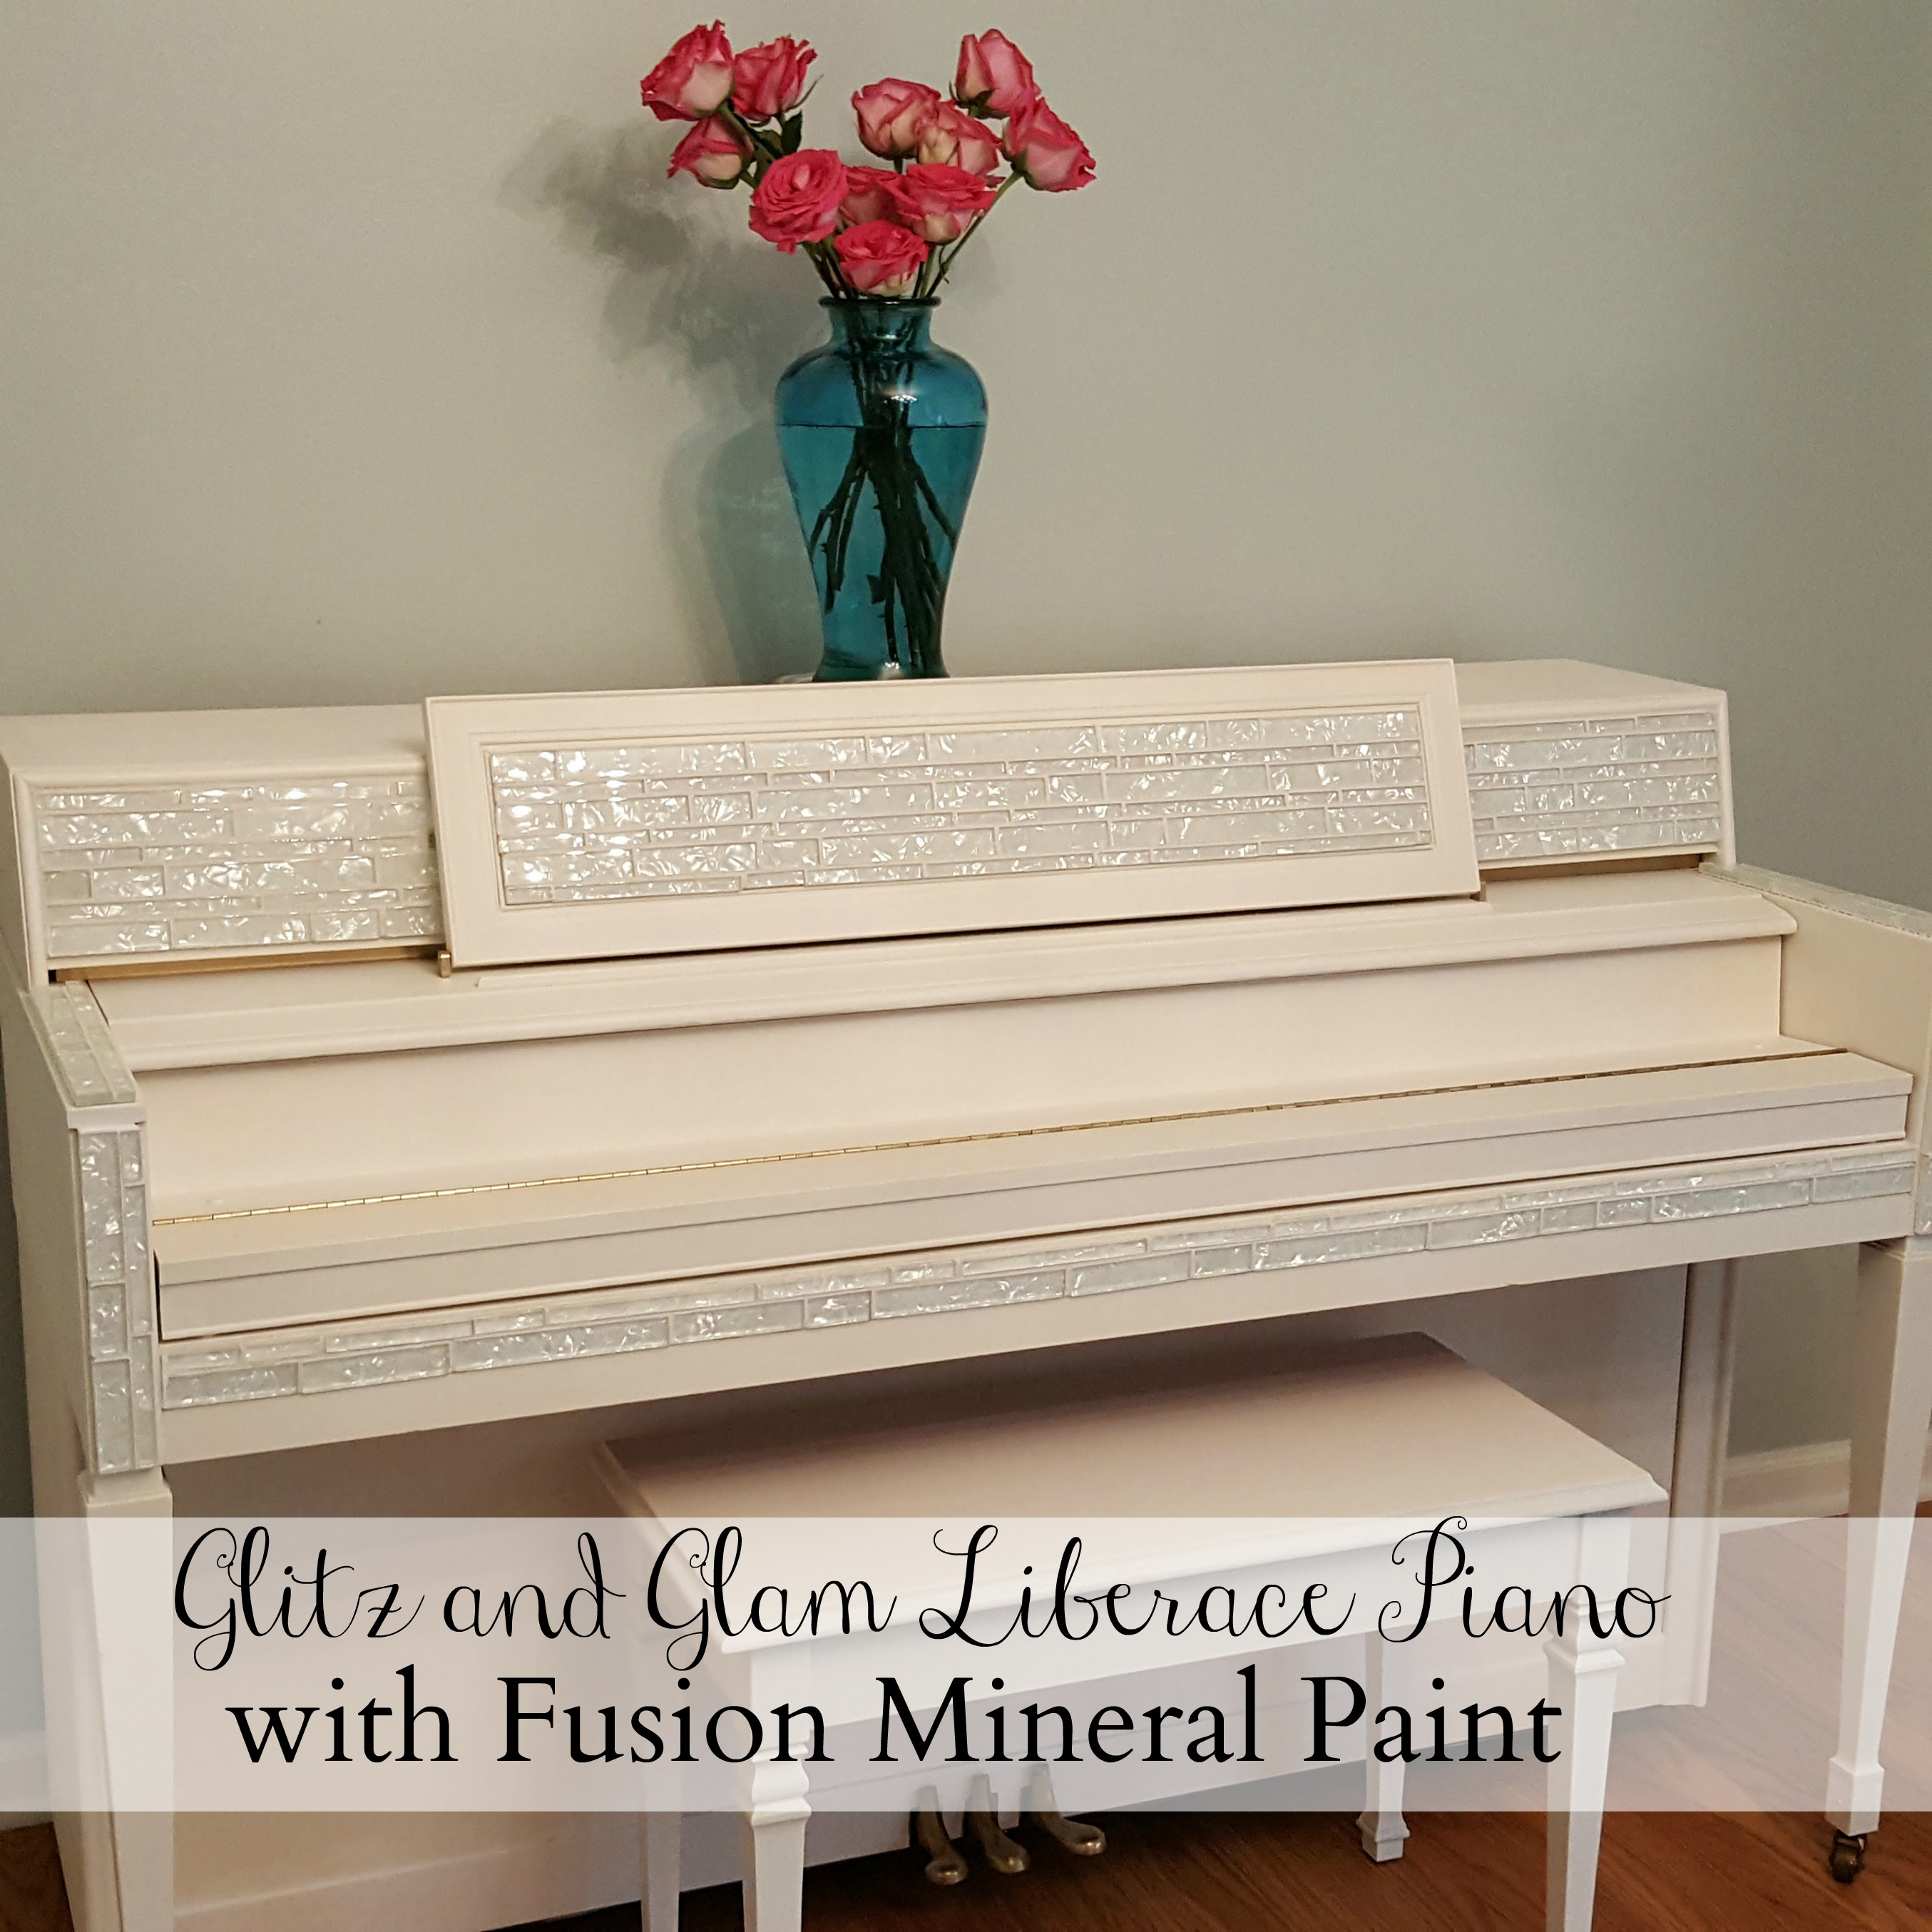 A glitz and glam piano transformation Liberace would envy with Fusion Mineral Paint - Housekaboodle